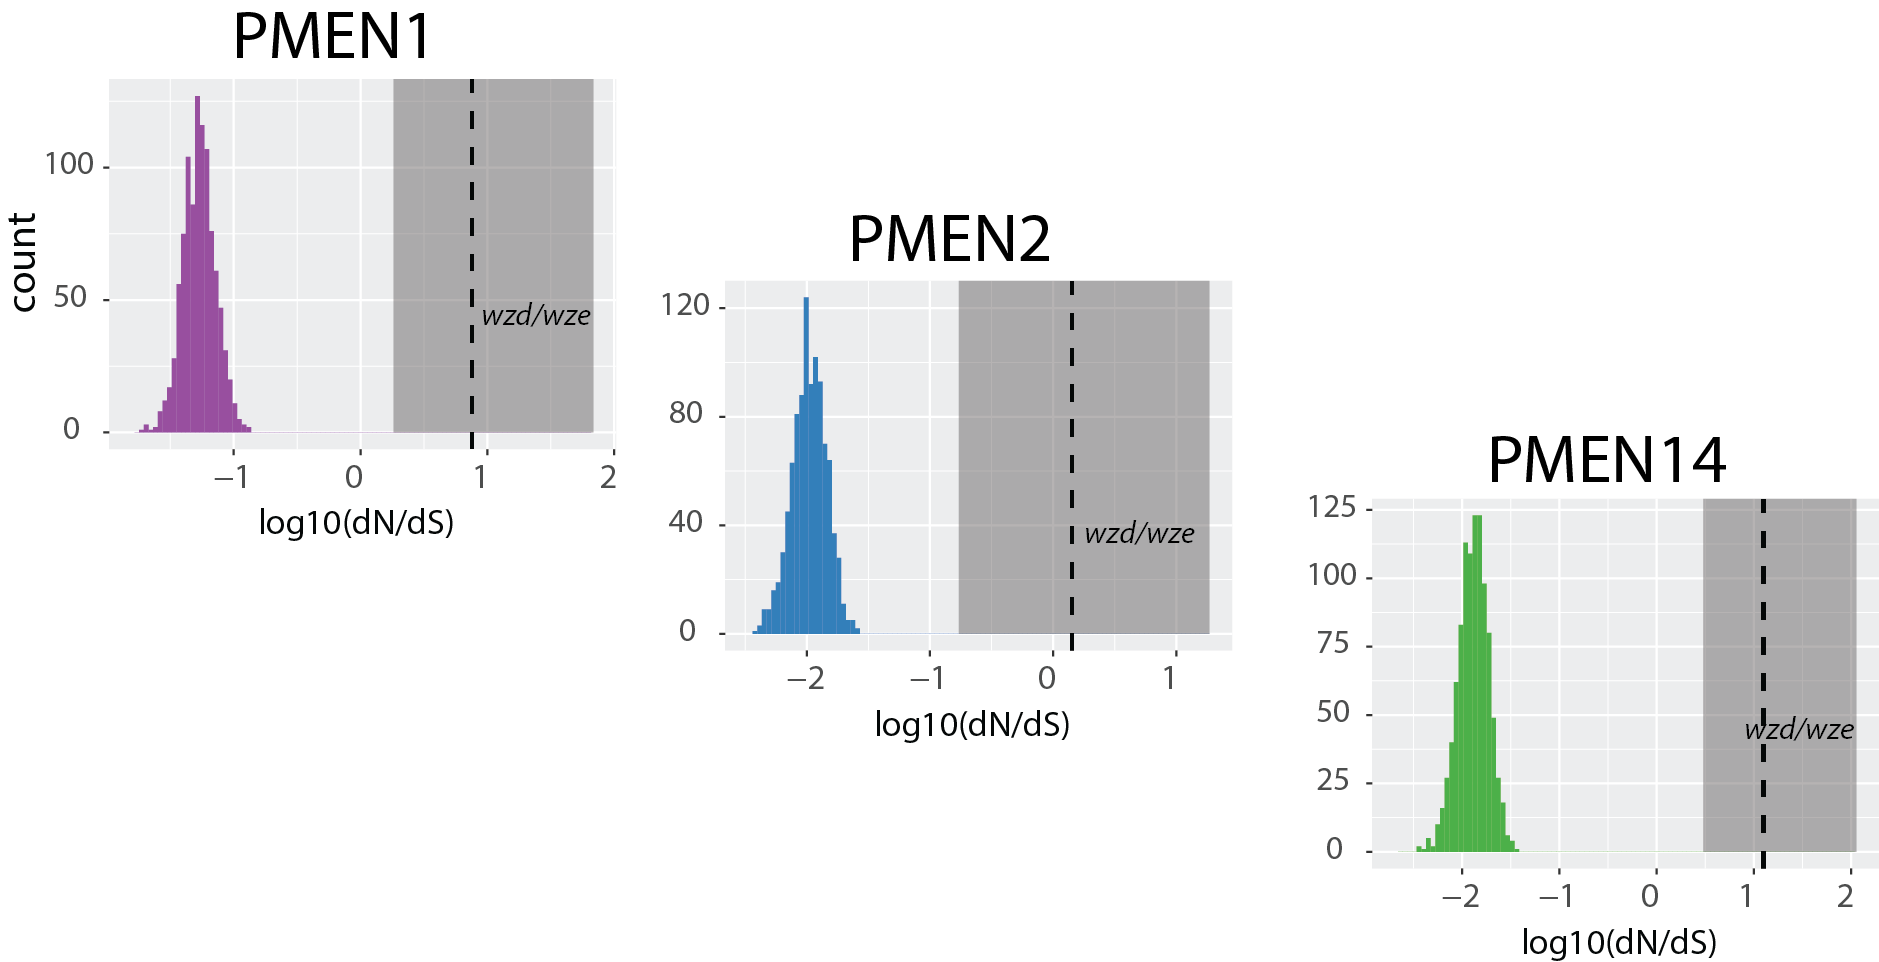 Diversifying selection acting on the  wzd / wze  genes in the  cps . Distributions show the range of dN/dS values in the genome. (From [1].)